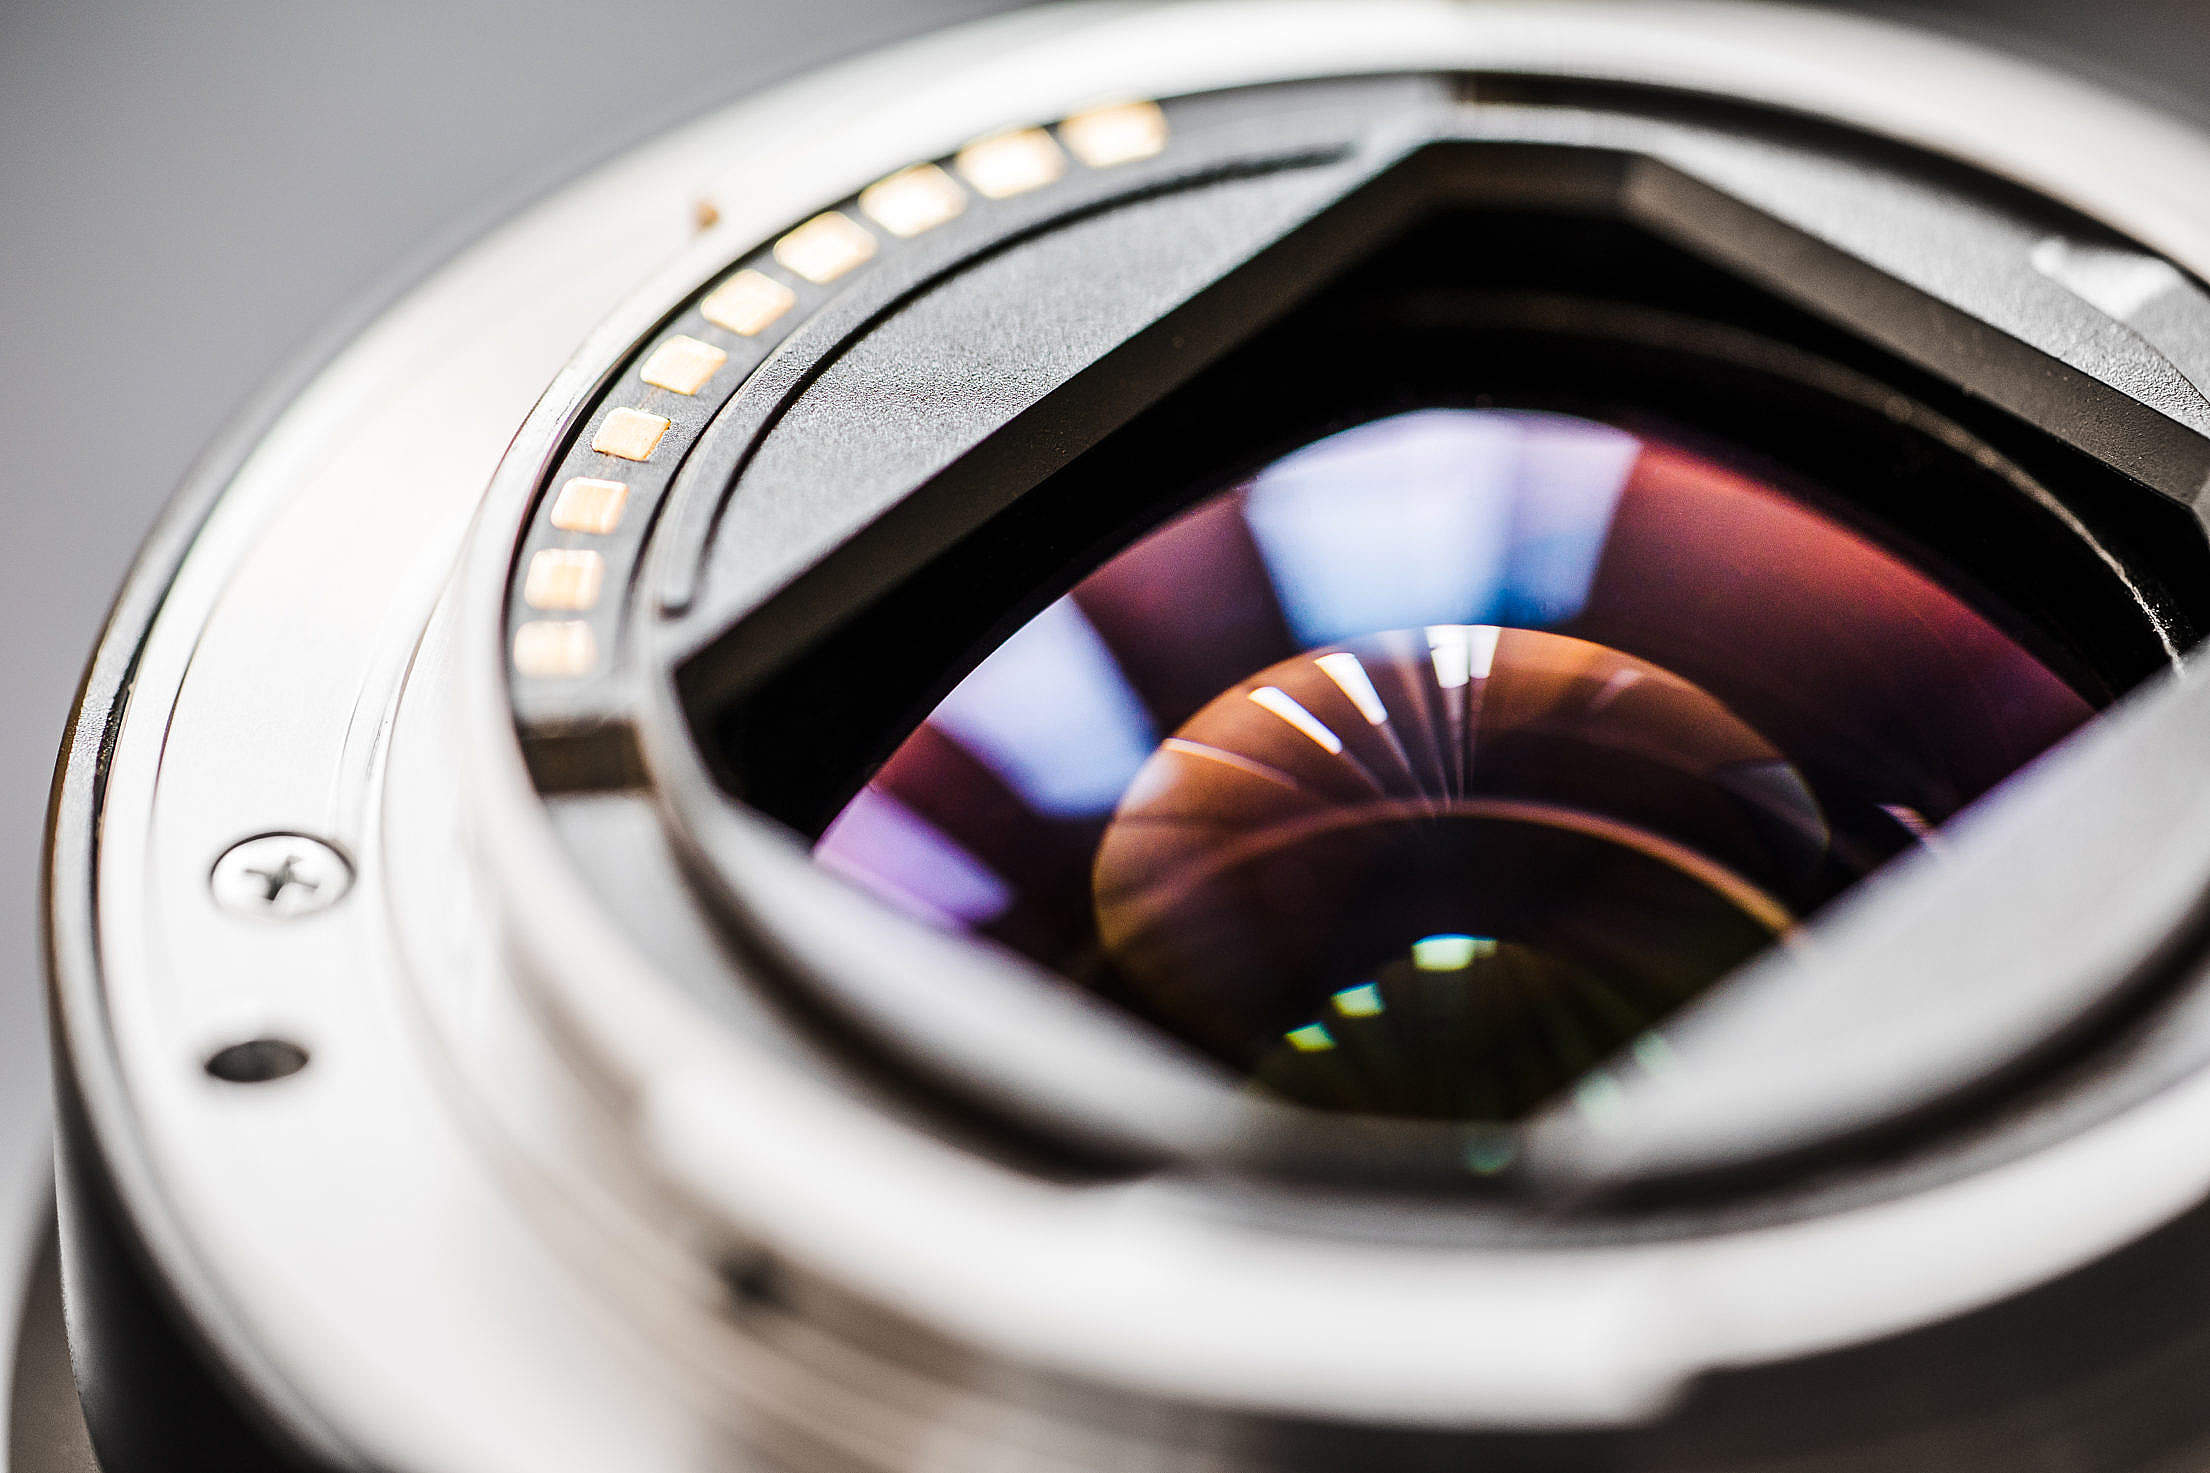 Exposed Zoom Camera Lens Electronics Rear Side Close Up Free Stock Photo